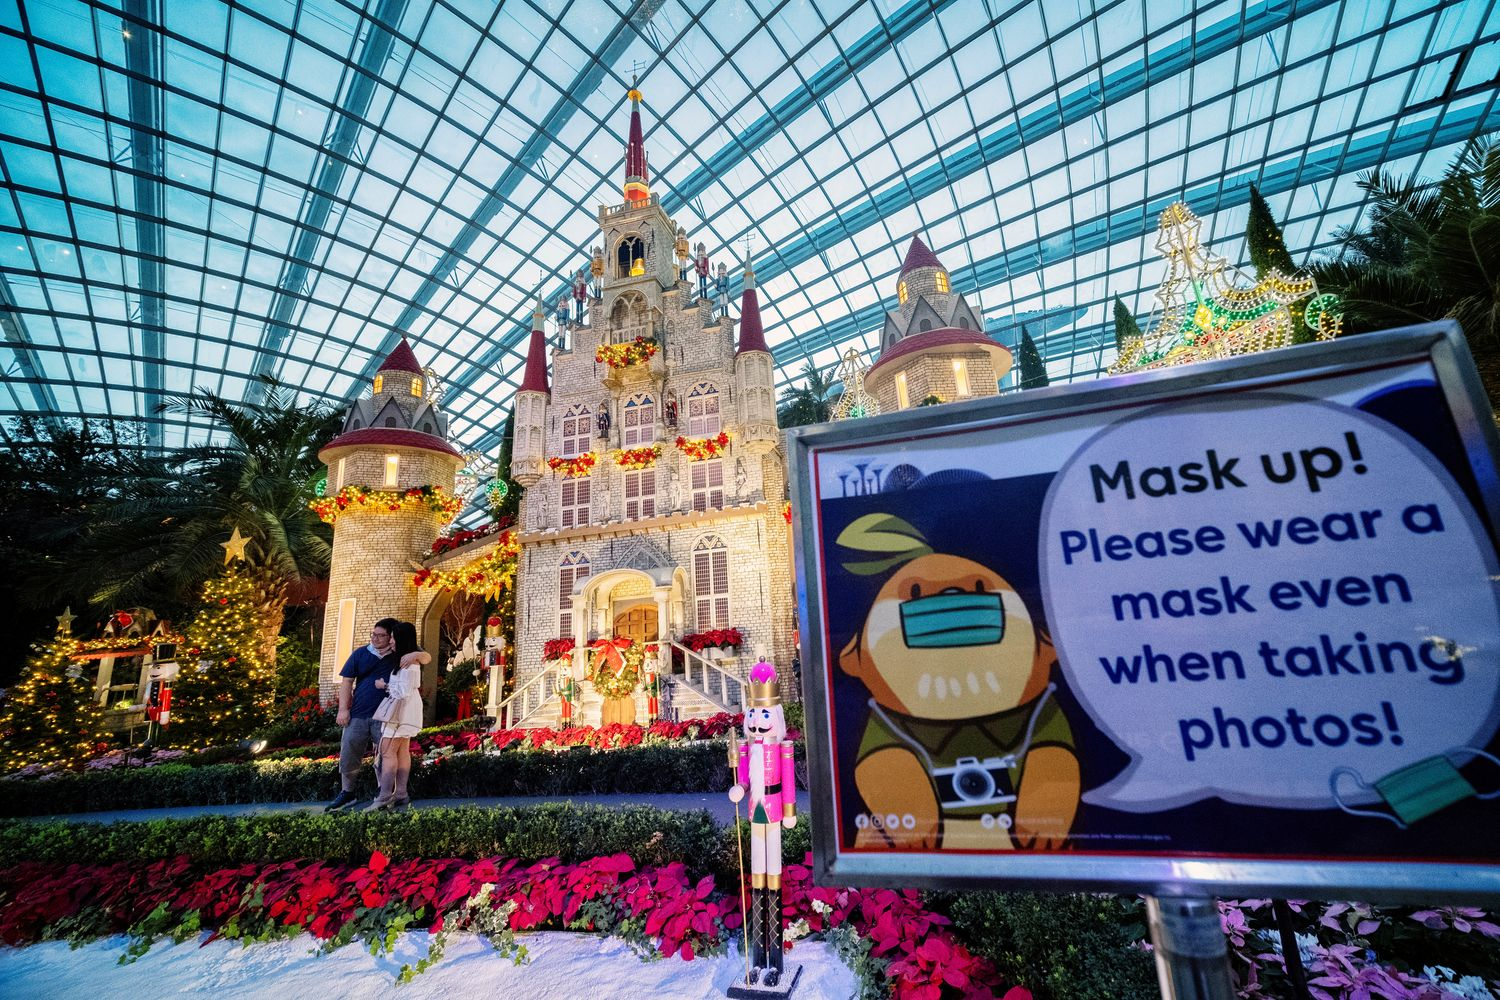 A sign reminds people to wear their protective masks due to the ongoing coronavirus disease outbreak, during the Poinsettia Wishes floral display, as part of the Christmas celebrations at Gardens by the Bay in Singapore on Sunday. (Reuters photo)